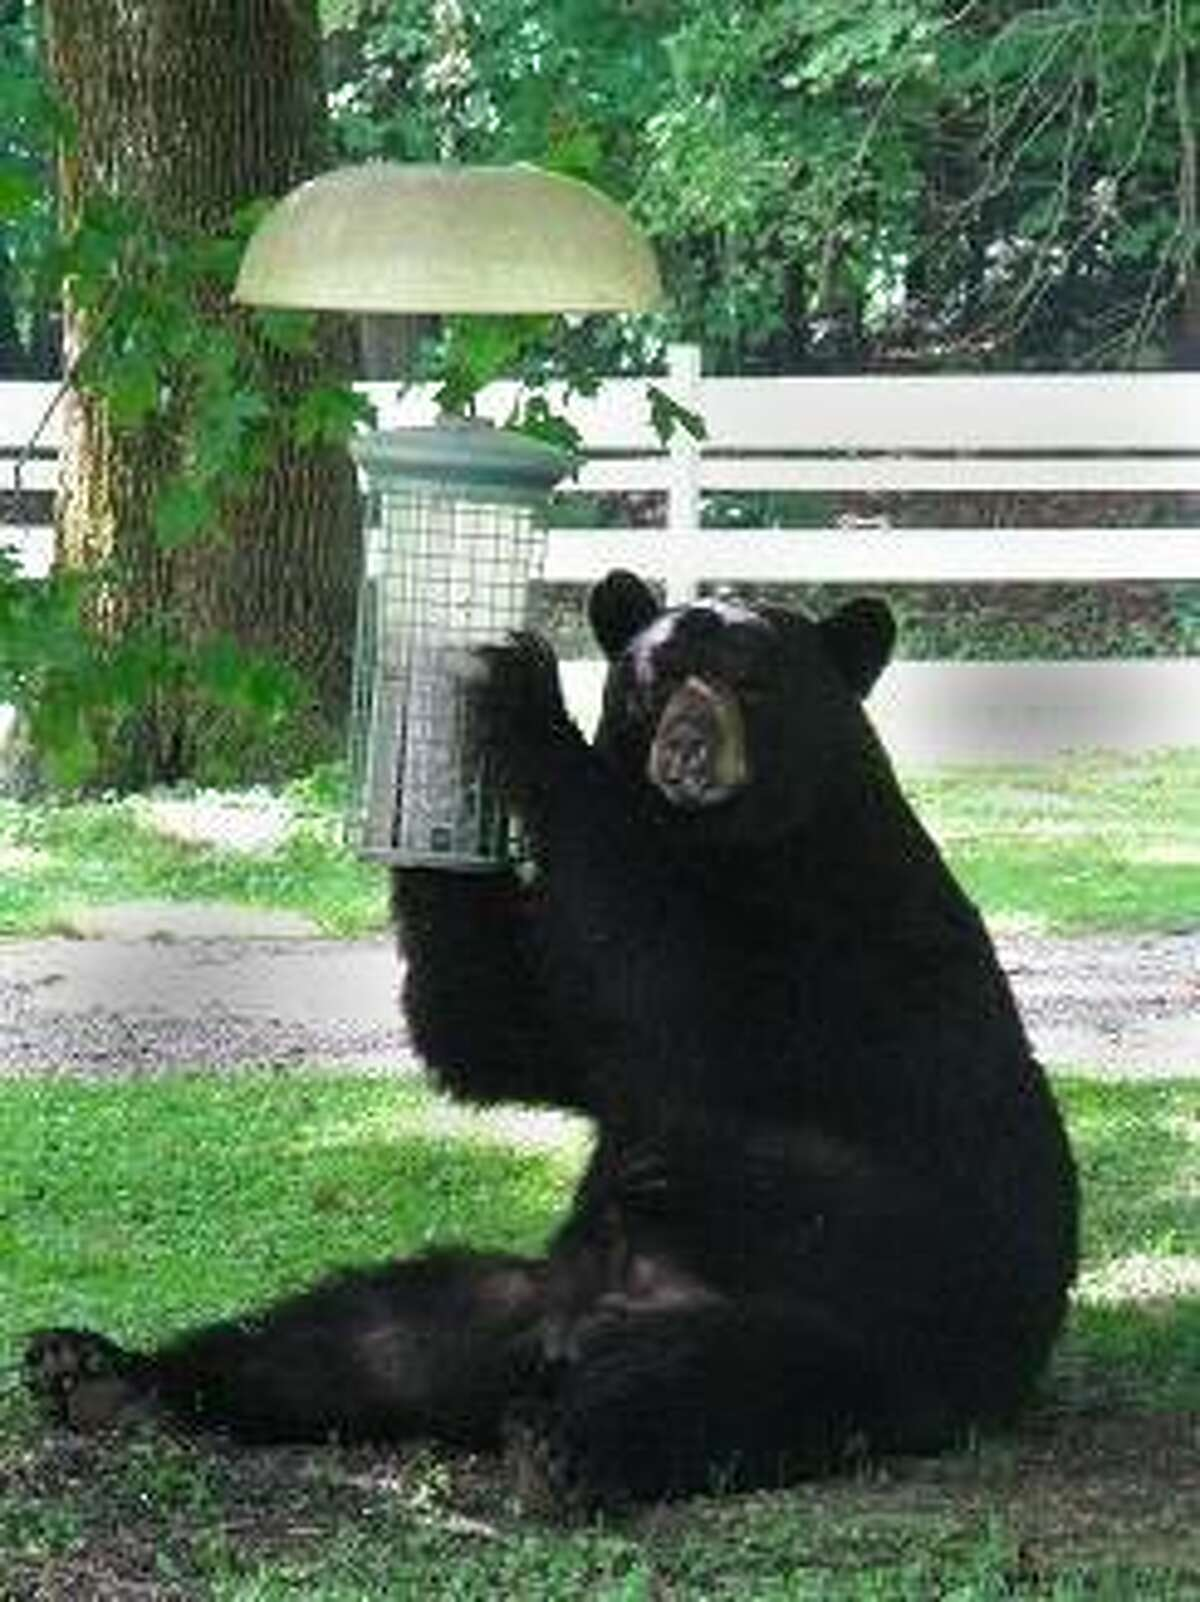 FILE PHOTO: Black bears are commonly seen in many areas of Connecticut.